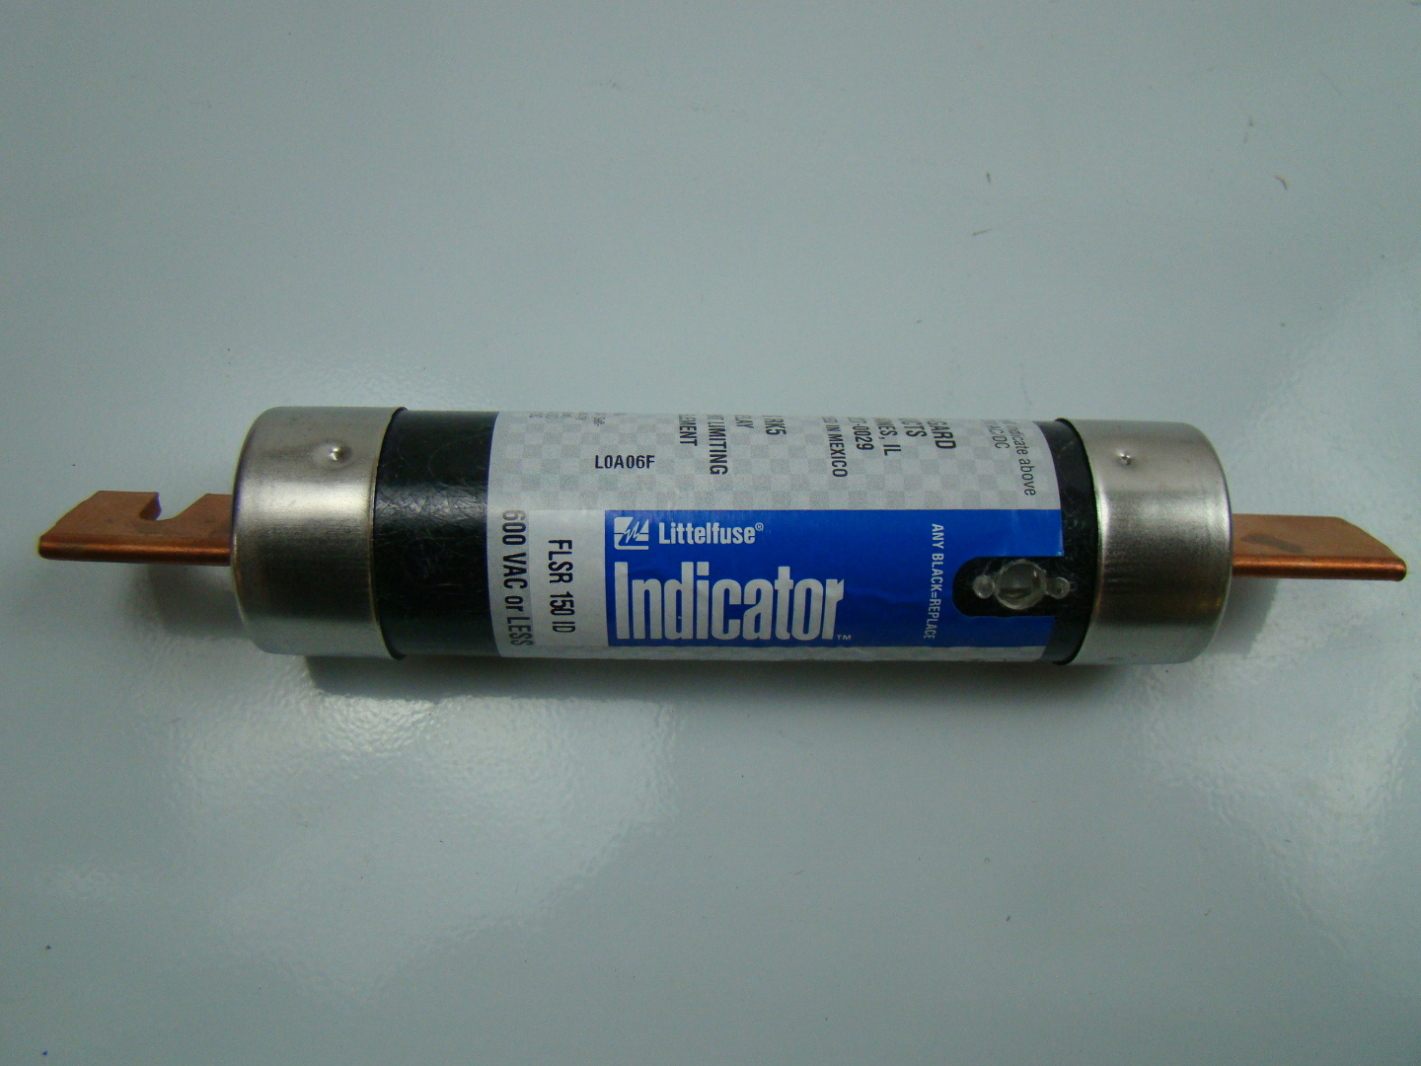 Littelfuse Indicator 600VAC or Less FLSR 150 ID